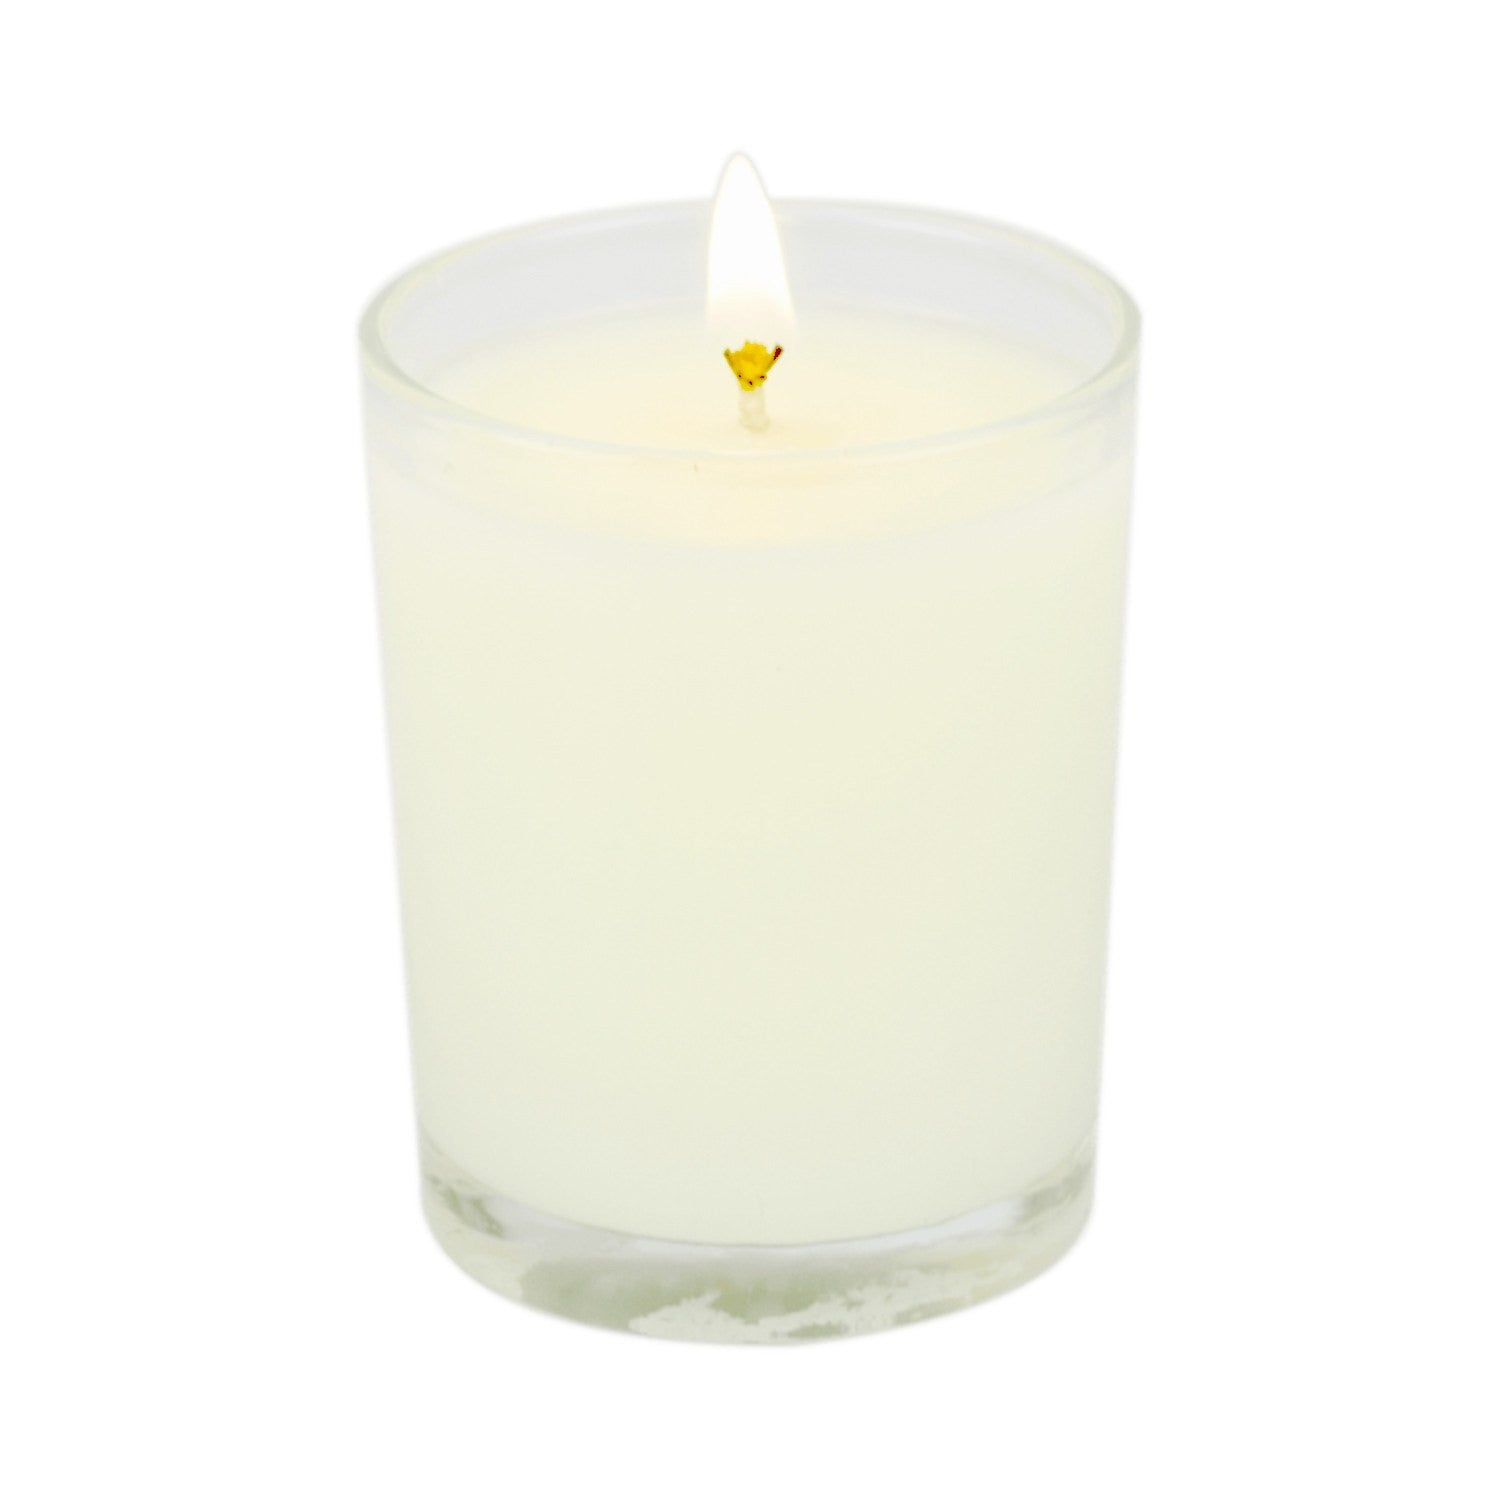 Frosted Glass Votive Holder Candle Holders Candlemart.com $ 1.00